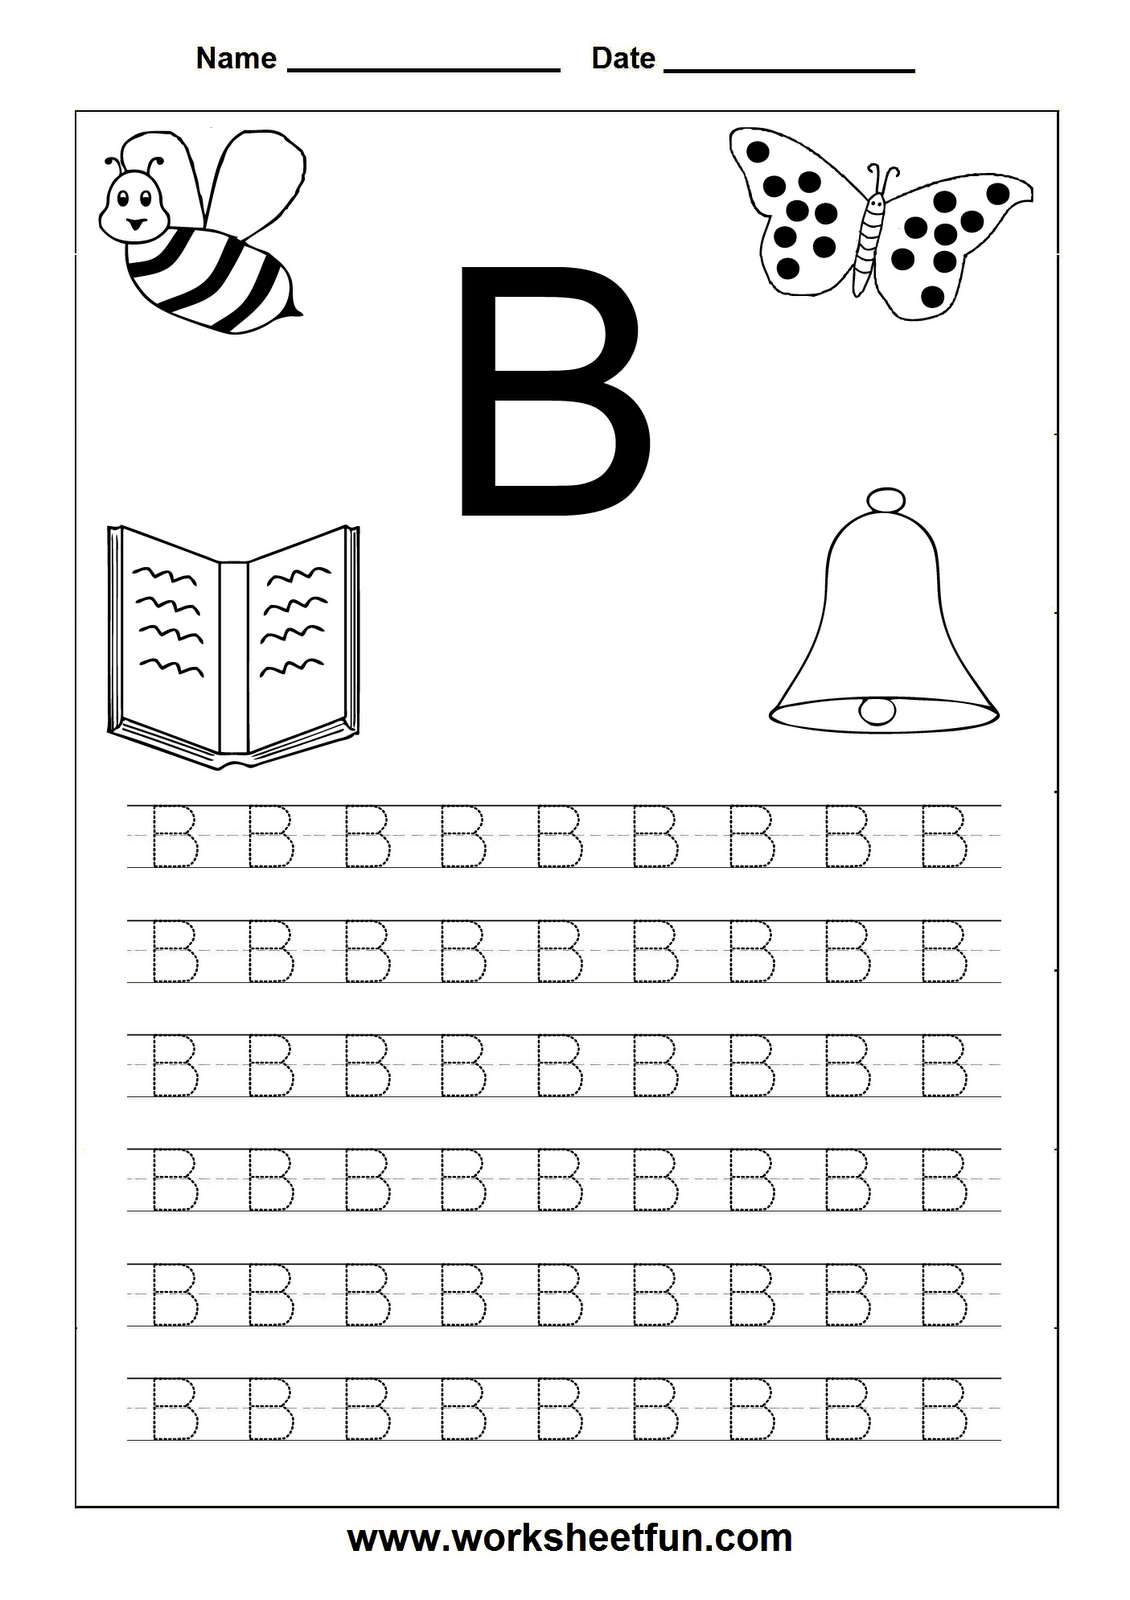 math worksheet : 1000 images about kindergarten worksheets on pinterest  : Free Abc Worksheets For Kindergarten